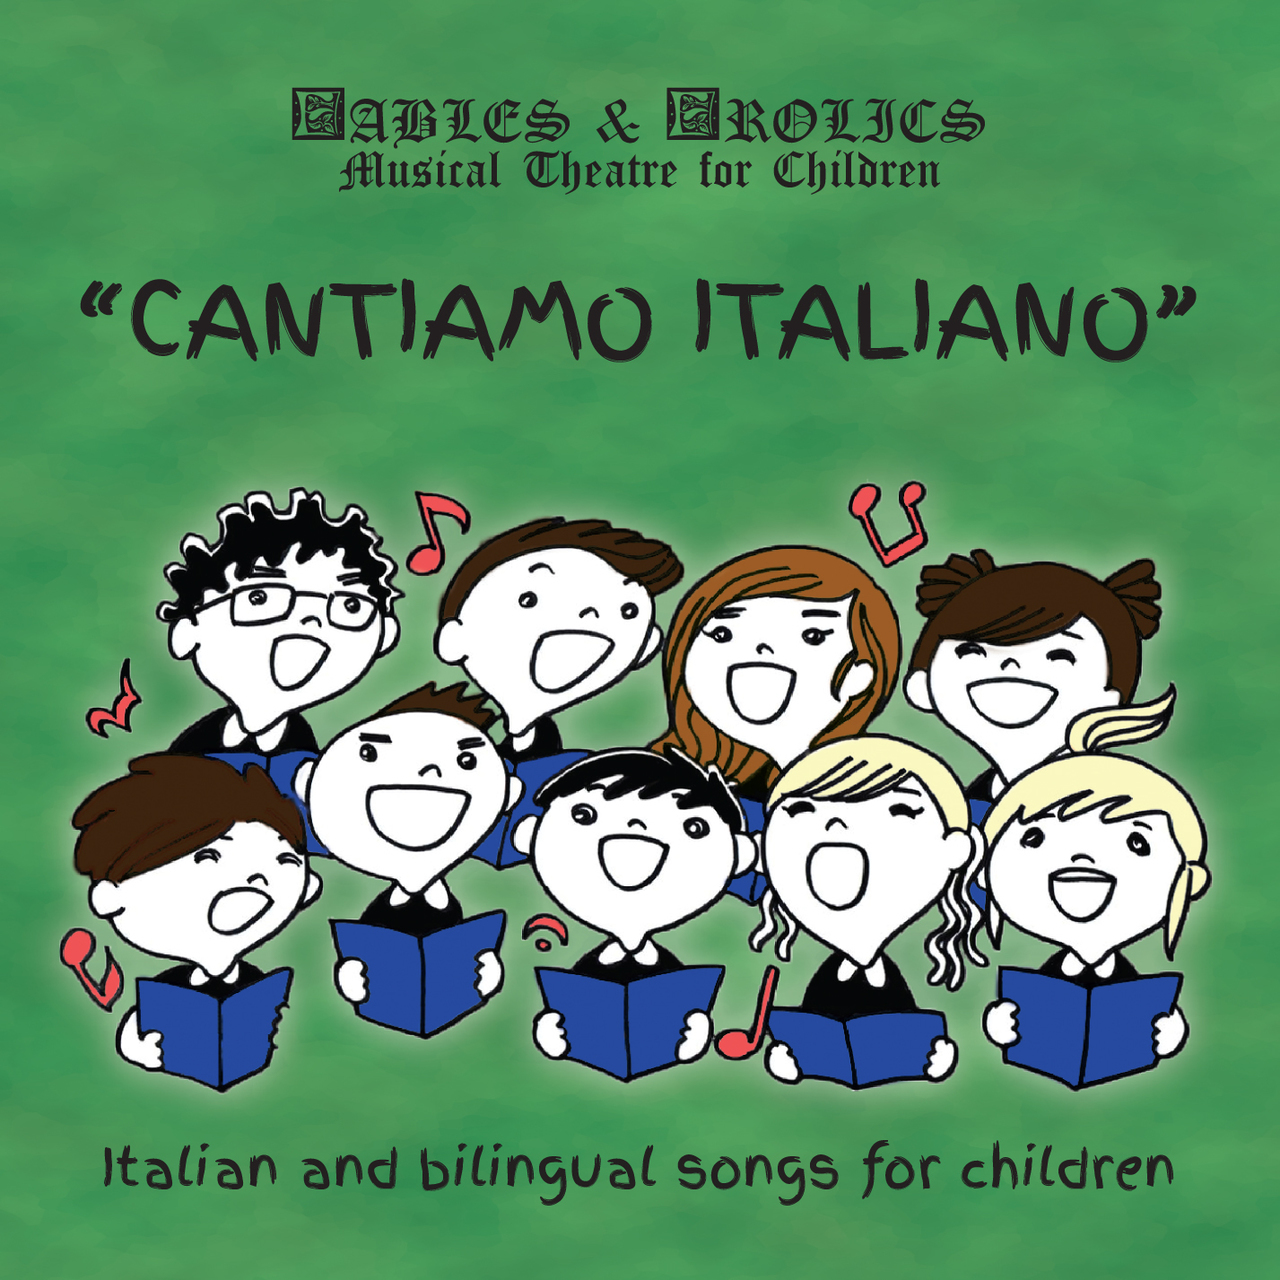 CANTIAMO ITALIANO- ITALIAN & BILINGUAL SONGS FOR CHILDREN